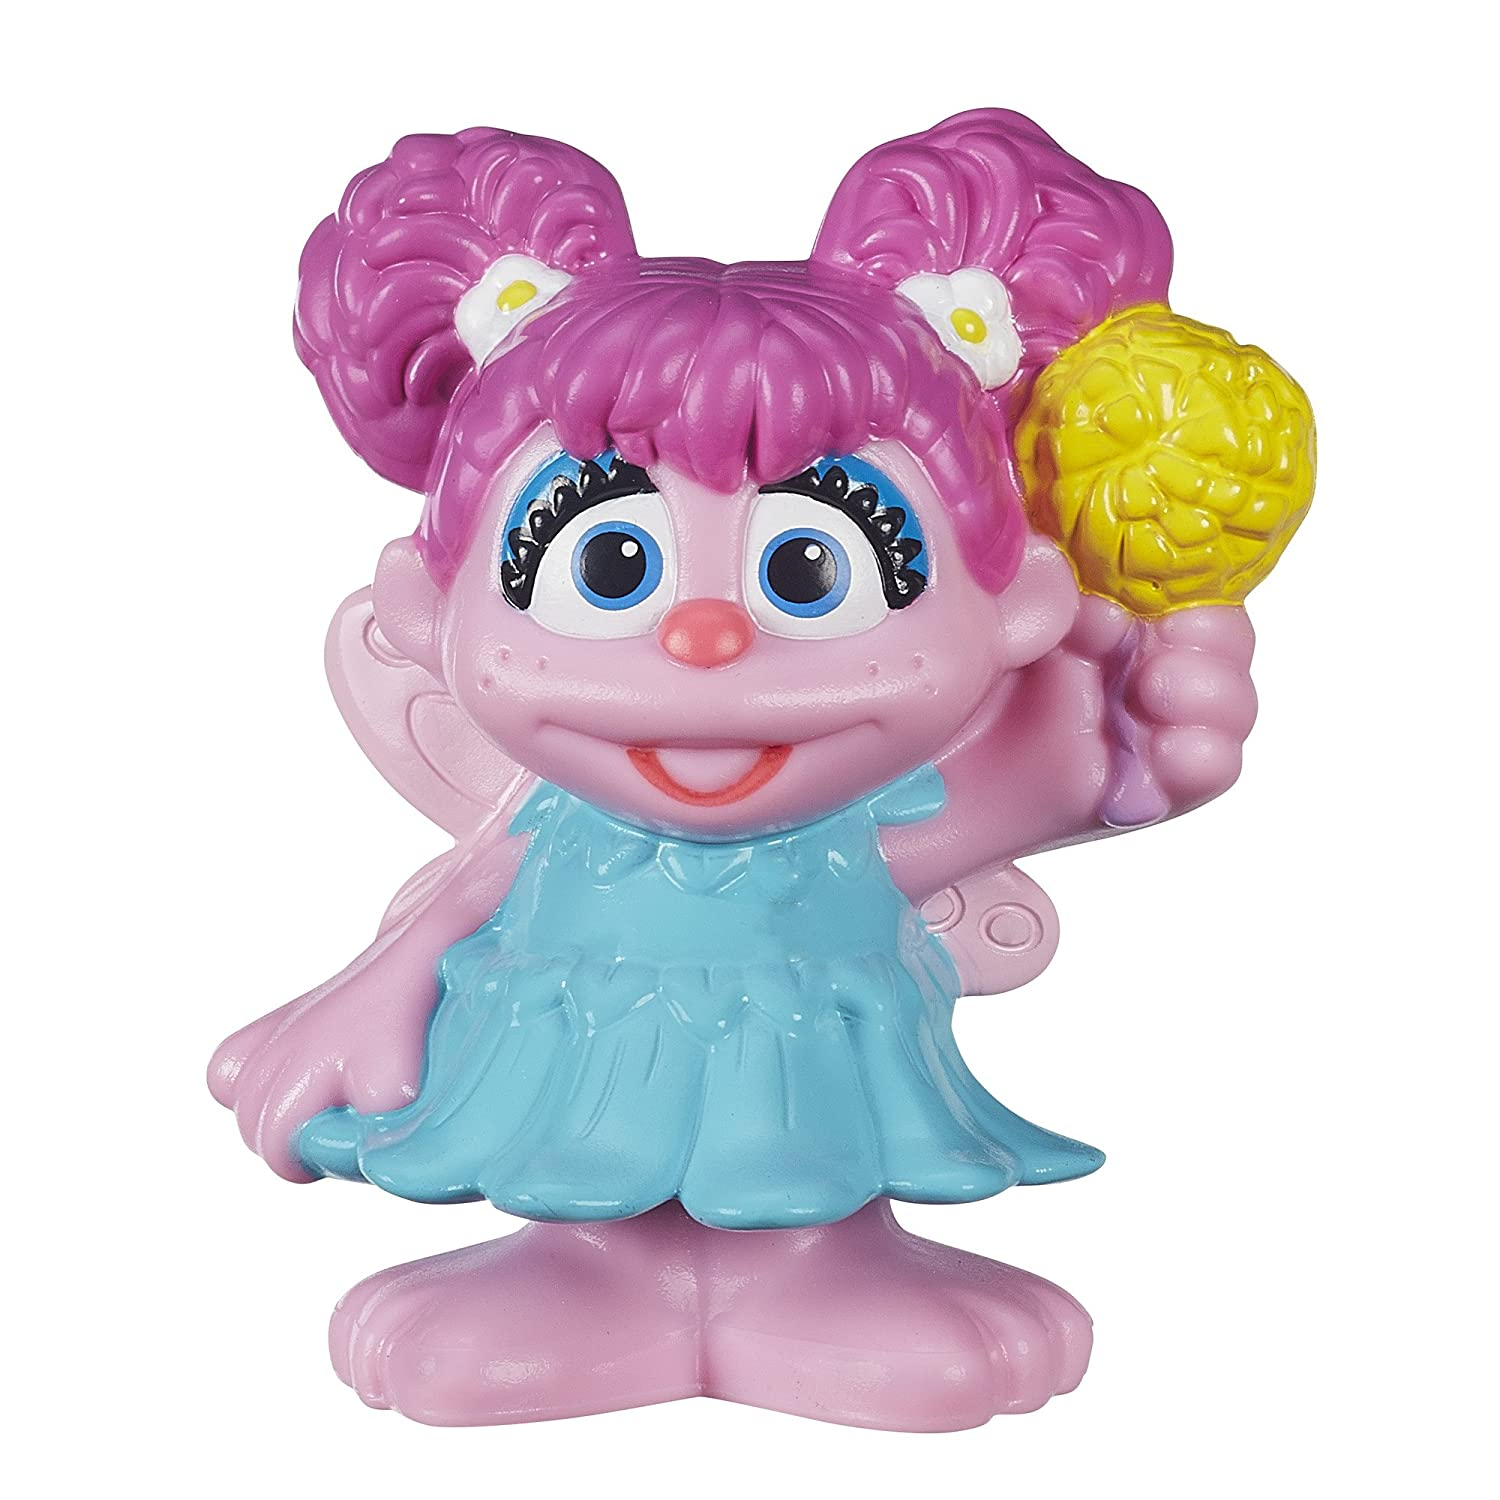 Sesame Street, Abby Cadabby Figure, 2.5 Inches by Hasbro